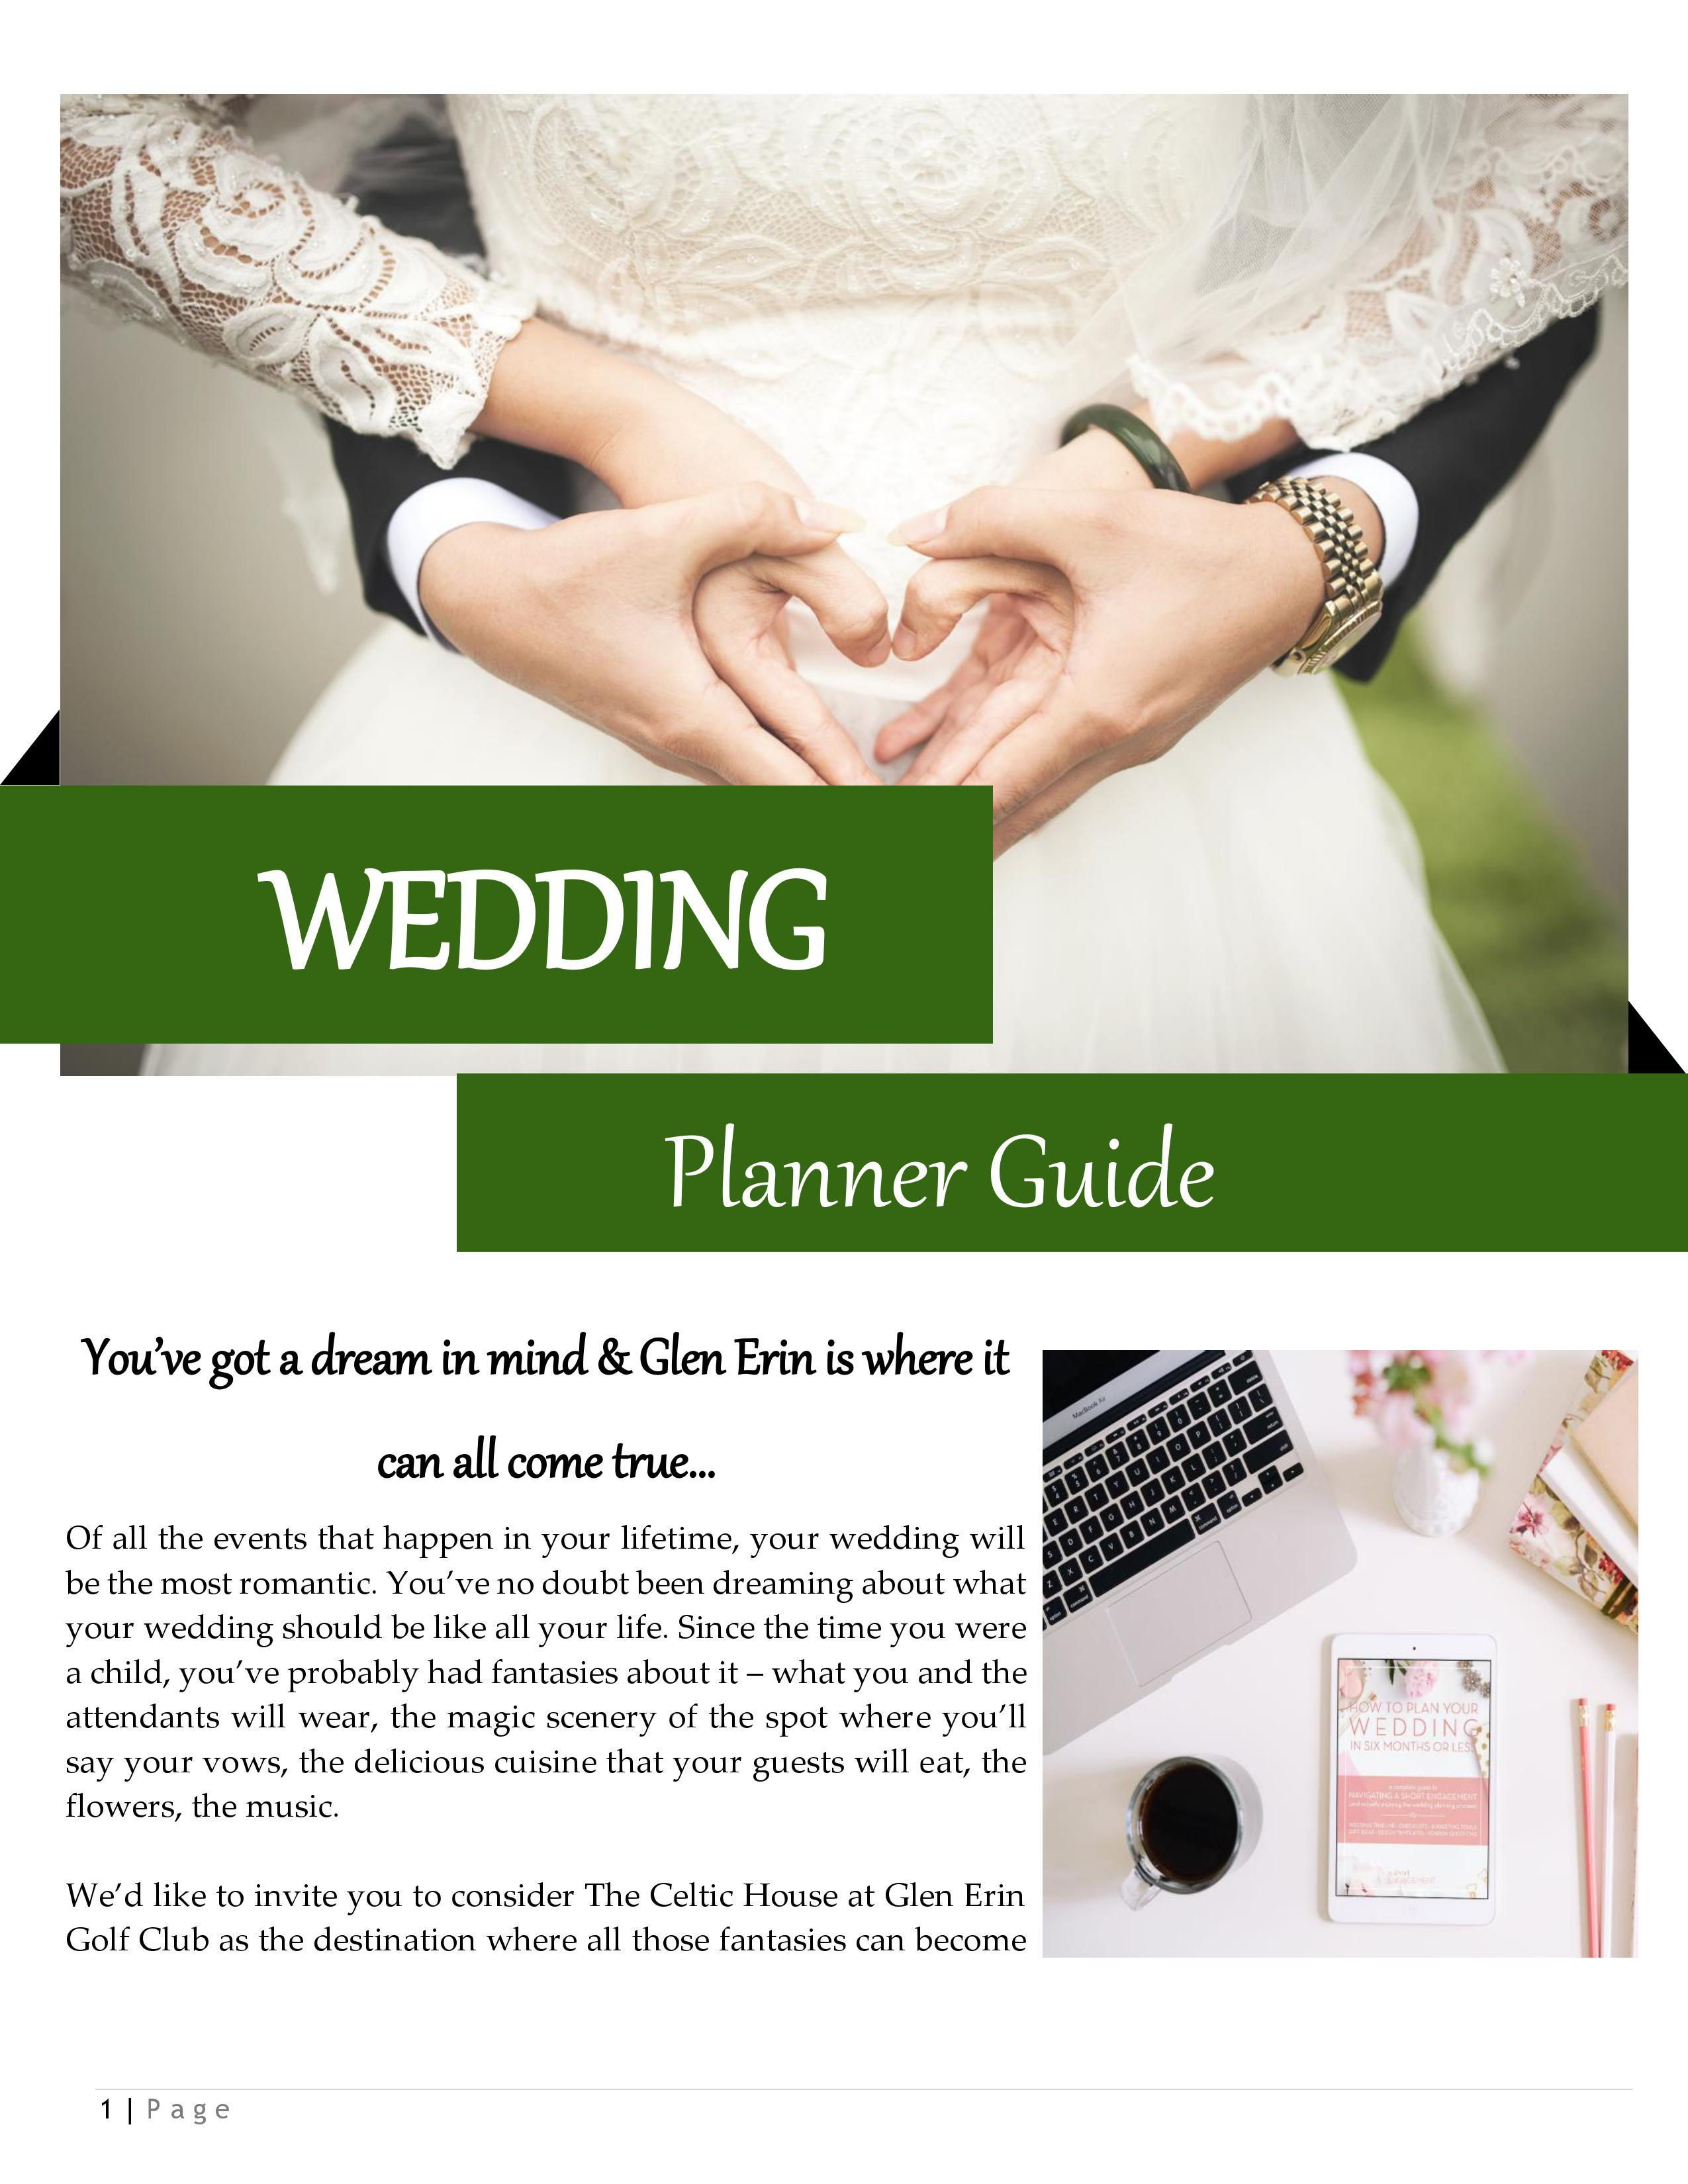 Wedding Planner Guide Cover Page